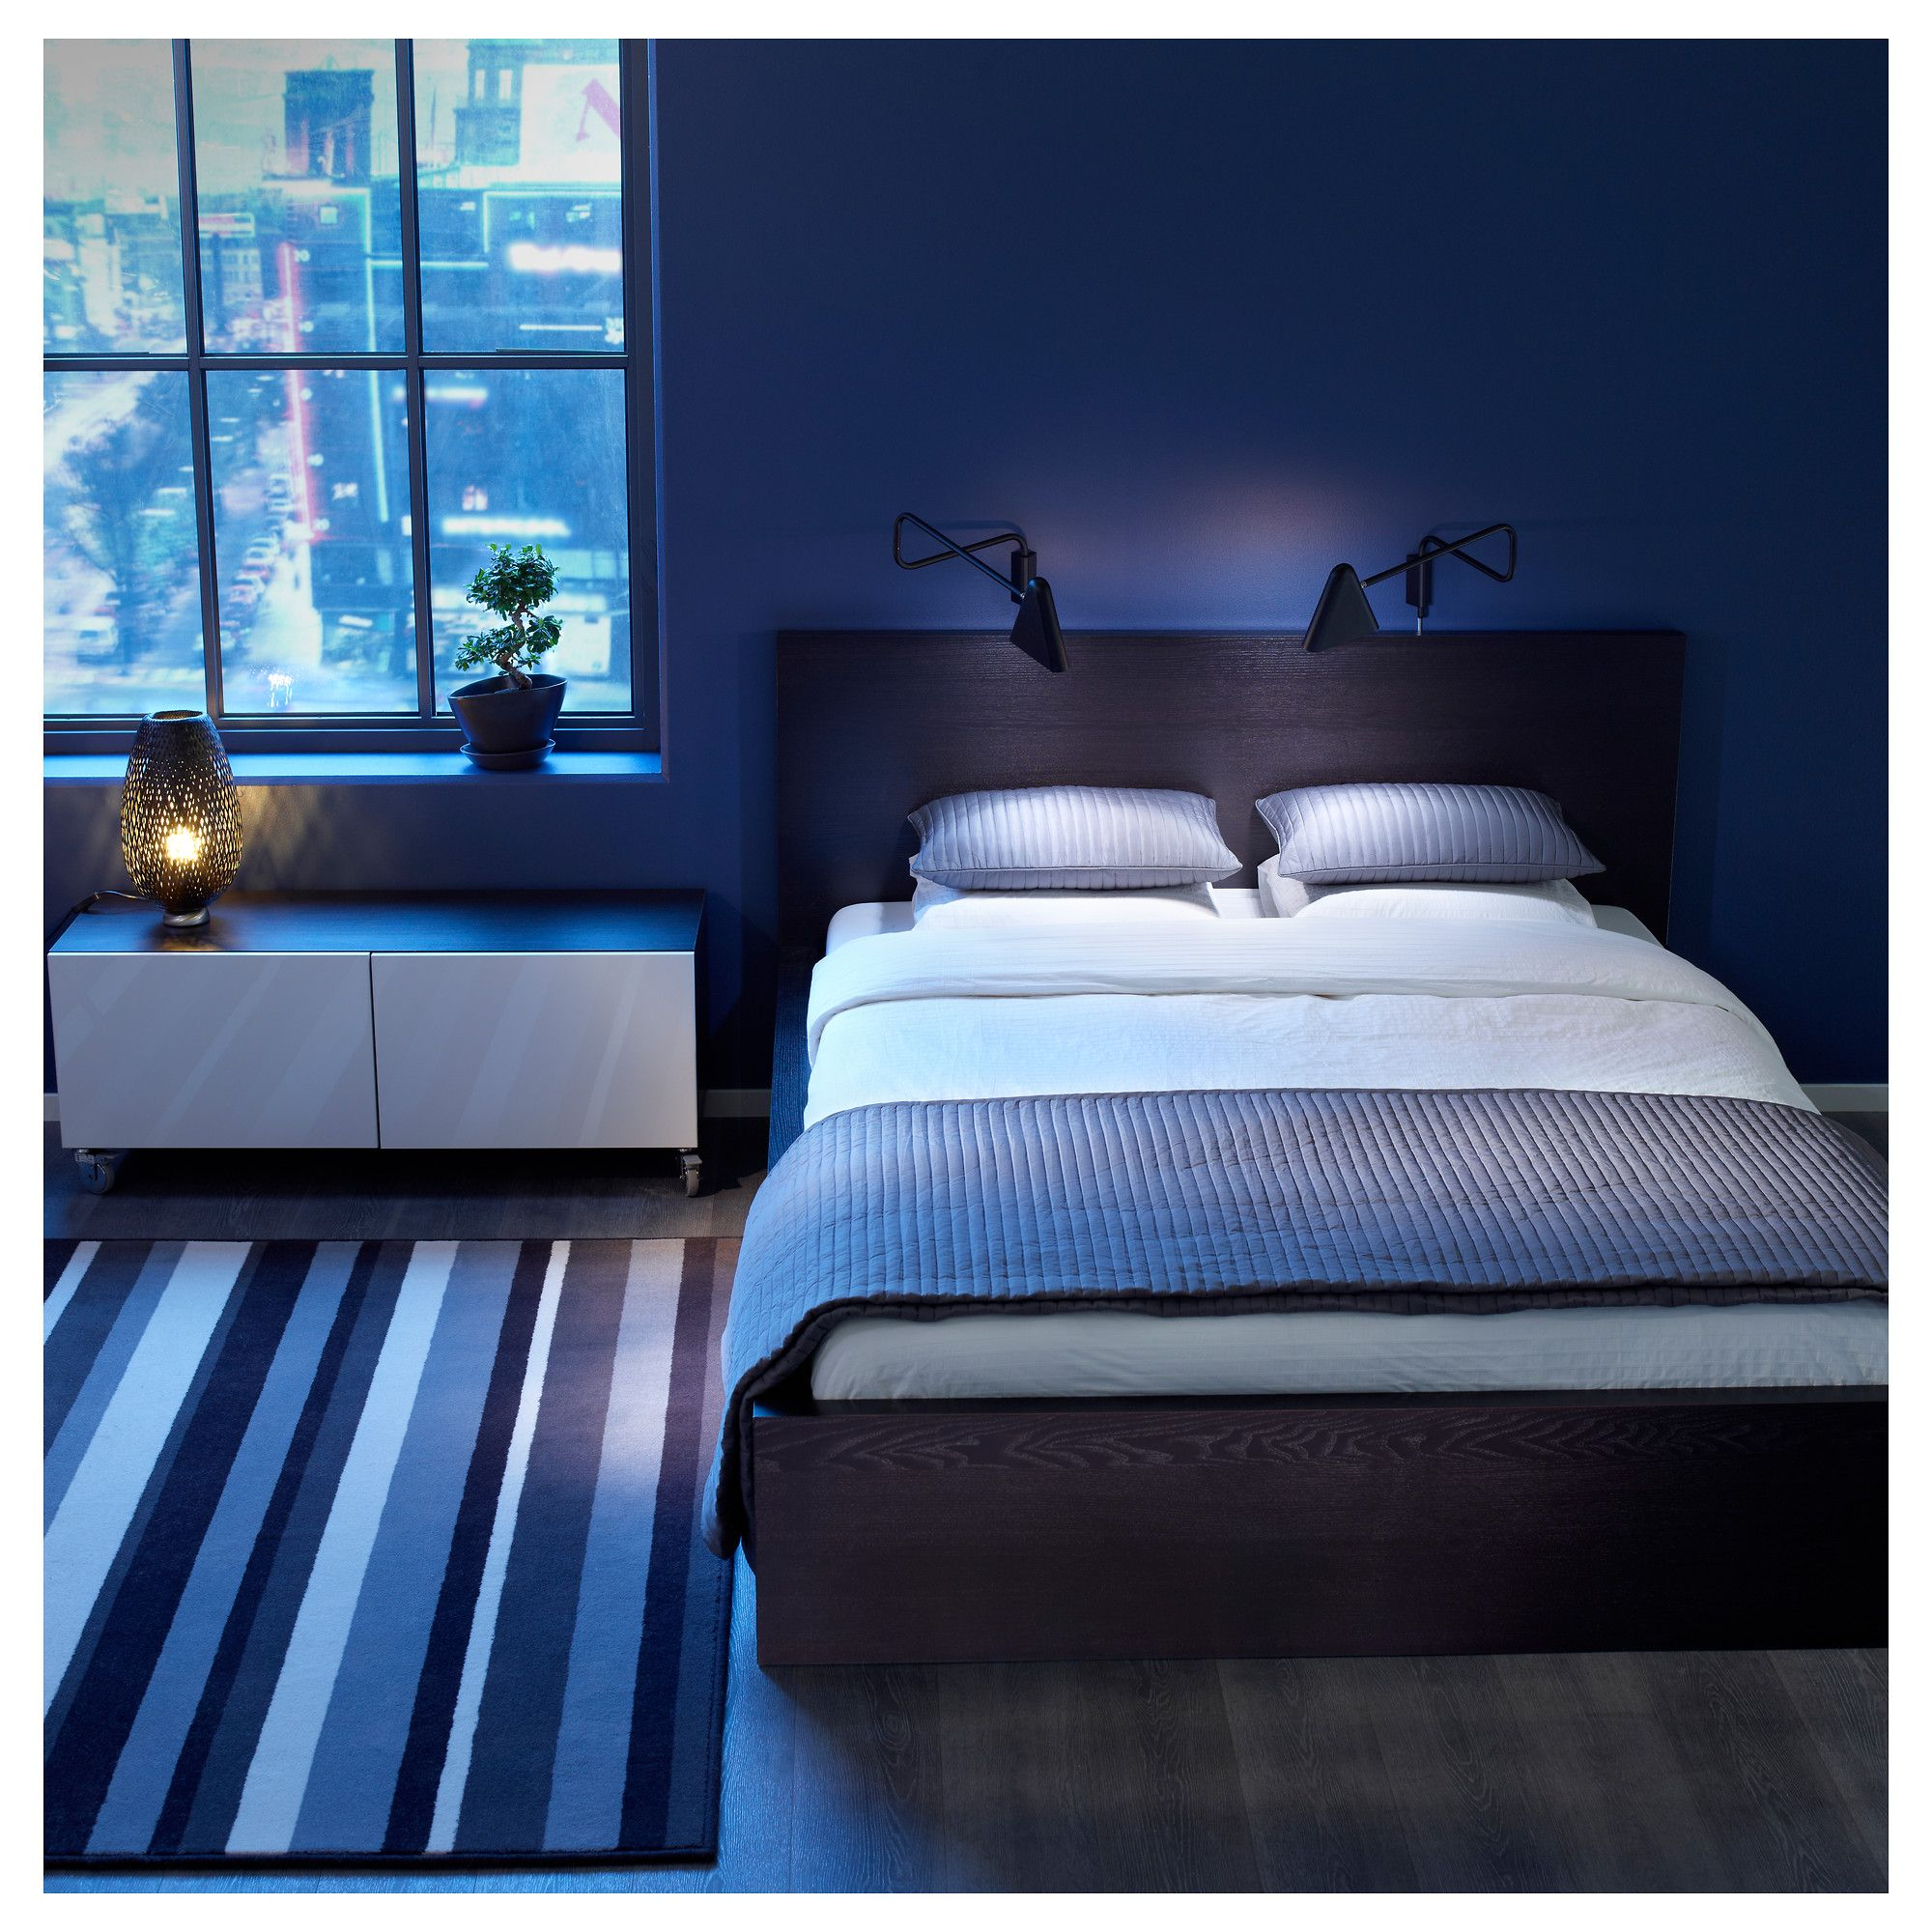 Bedroom, Charming Blue Bedroom Ideas With Cool Blue Wall Painted And Pair  Of Unique Wall Mounted Reading Lamps With Dark Headboard White Bed. Part 36